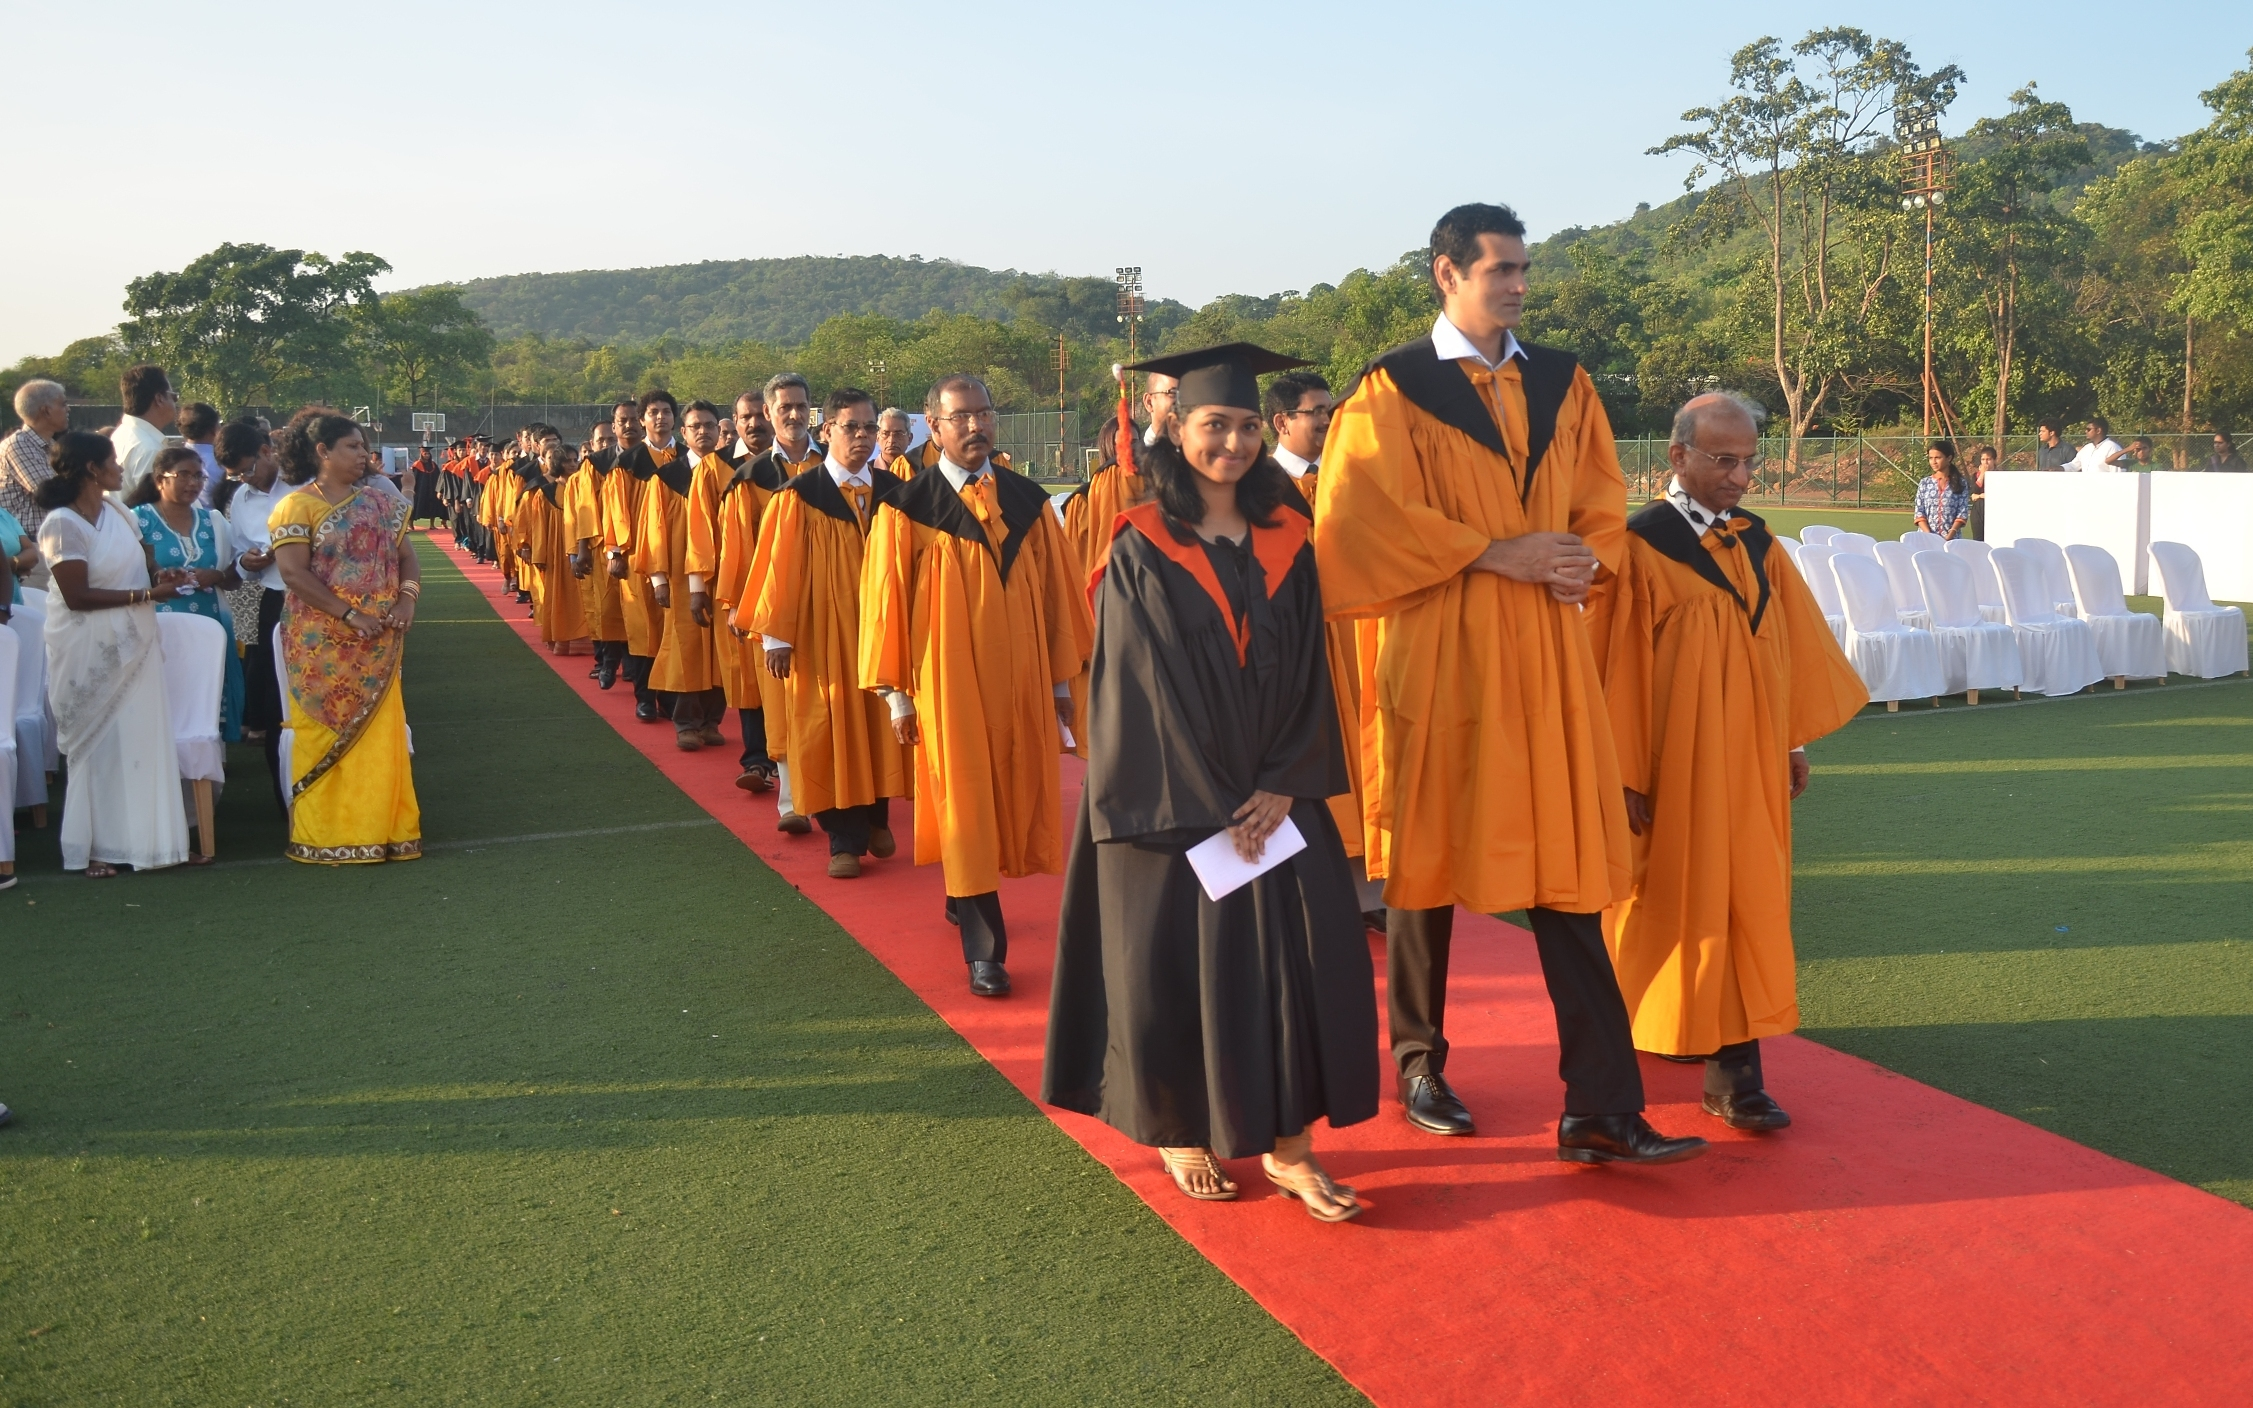 211 students receive the coveted degrees at the Chowgule College Graduation Day 2014